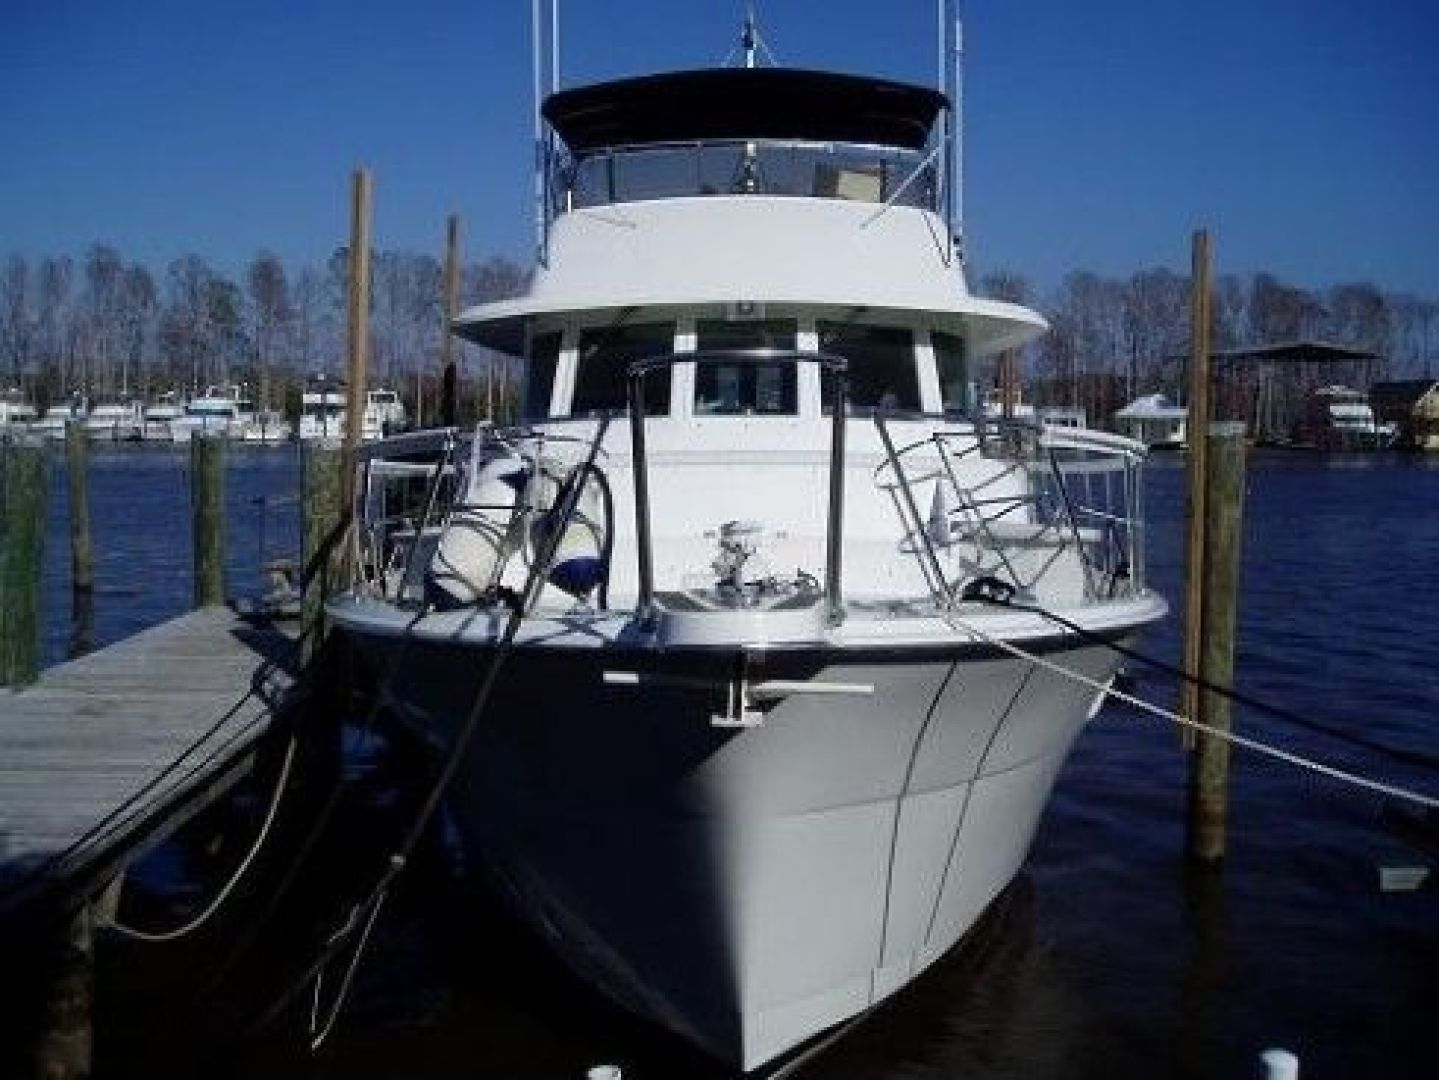 Hatteras-Cockpit Motor Yacht 1981 -Madisonville-Louisiana-United States-Bow View-200715 | Thumbnail